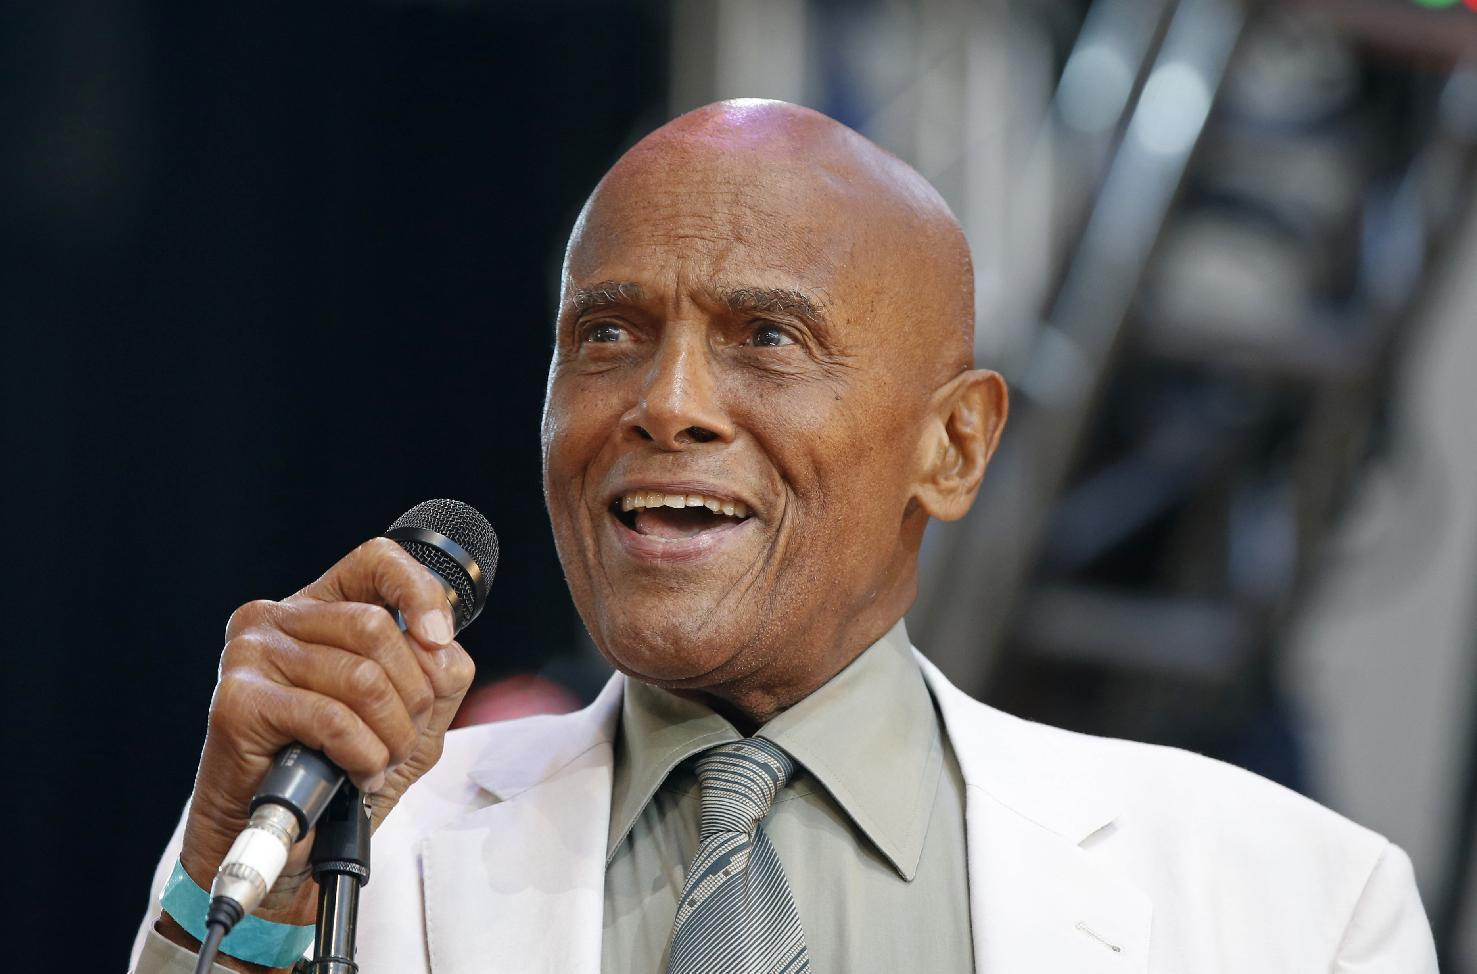 Harry Belafonte weighs in on Nate Parker and his new film